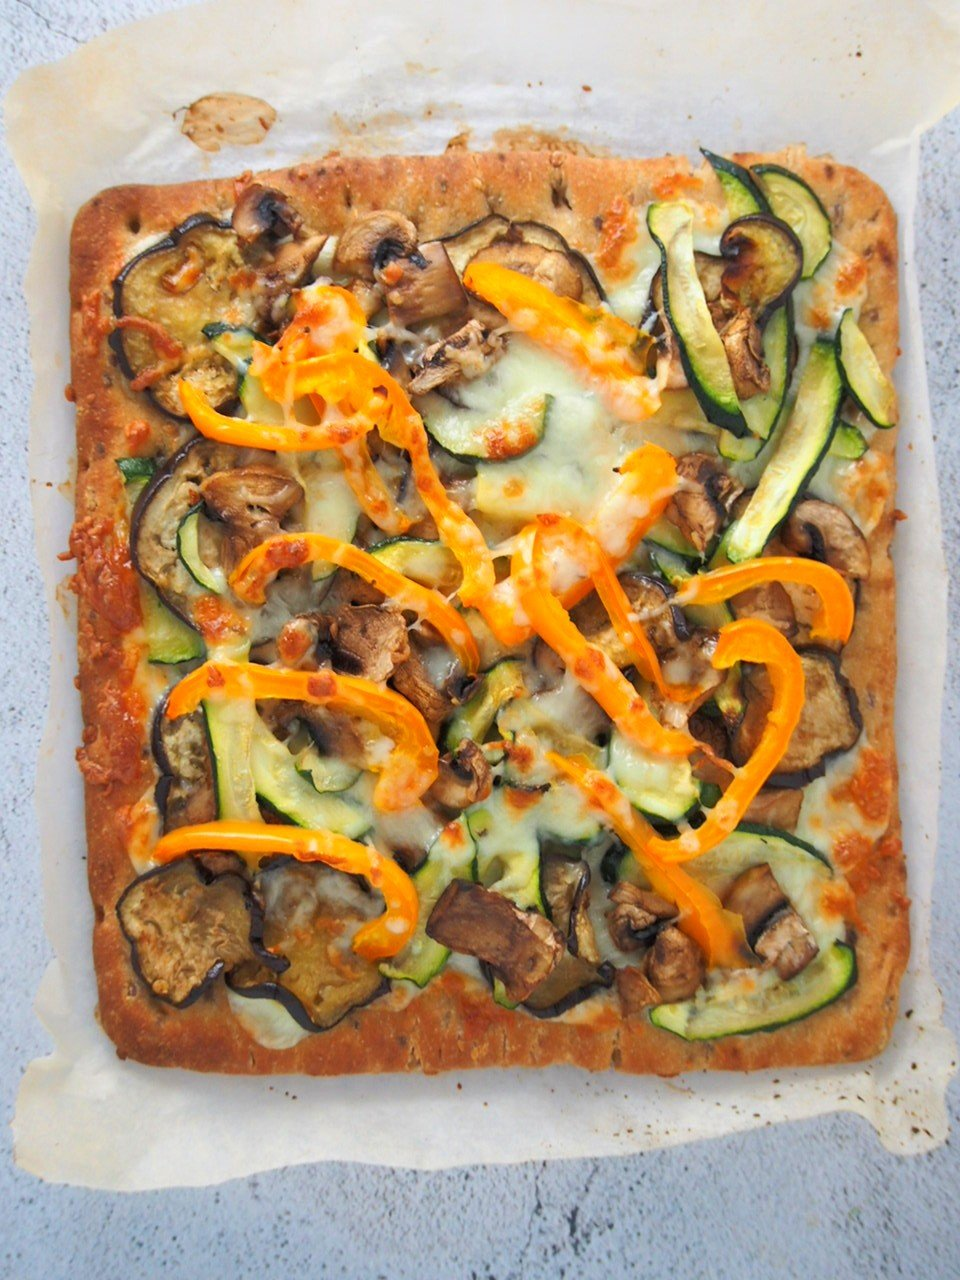 Top shot view of the whole veggies flatbread pizza.